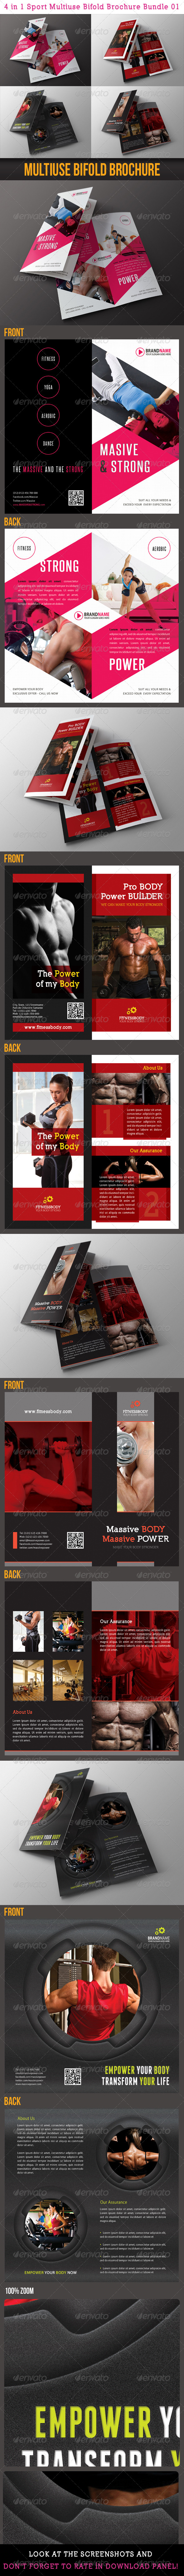 4 in 1 Sport Multiuse Bifold Brochure Bundle 01 - Corporate Brochures